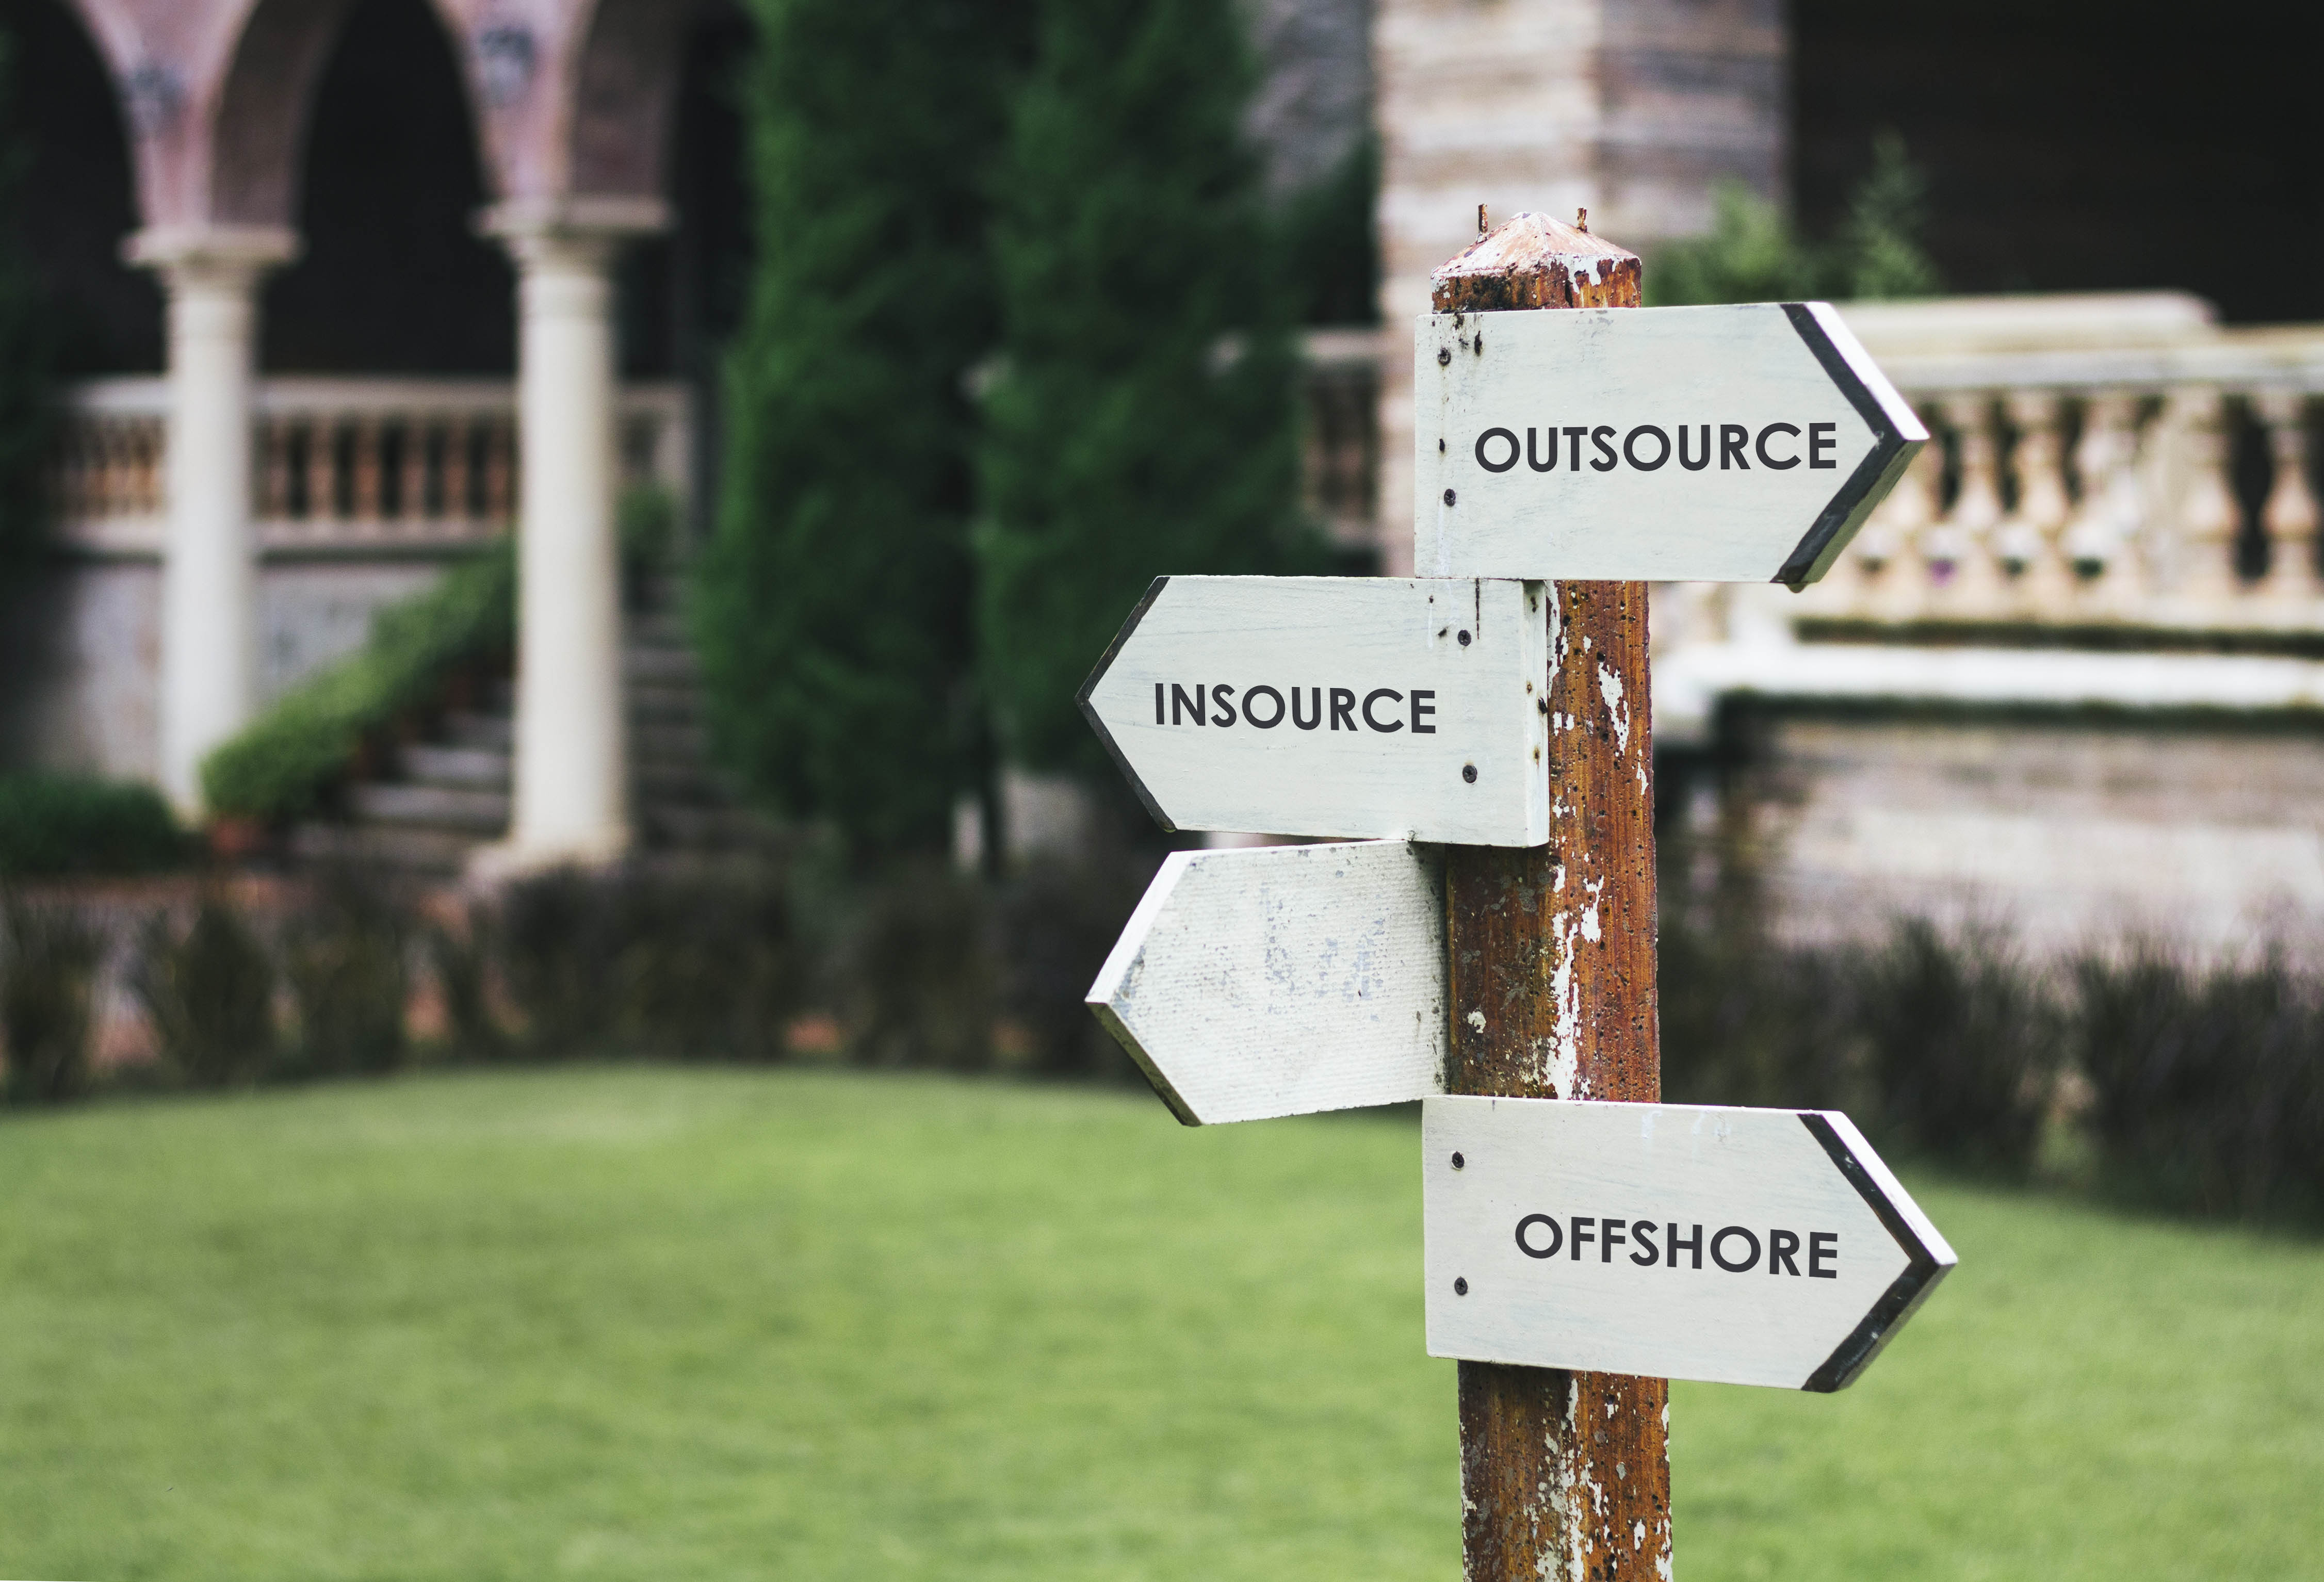 Insource vs Outsource: Which is the right way to scale your company?